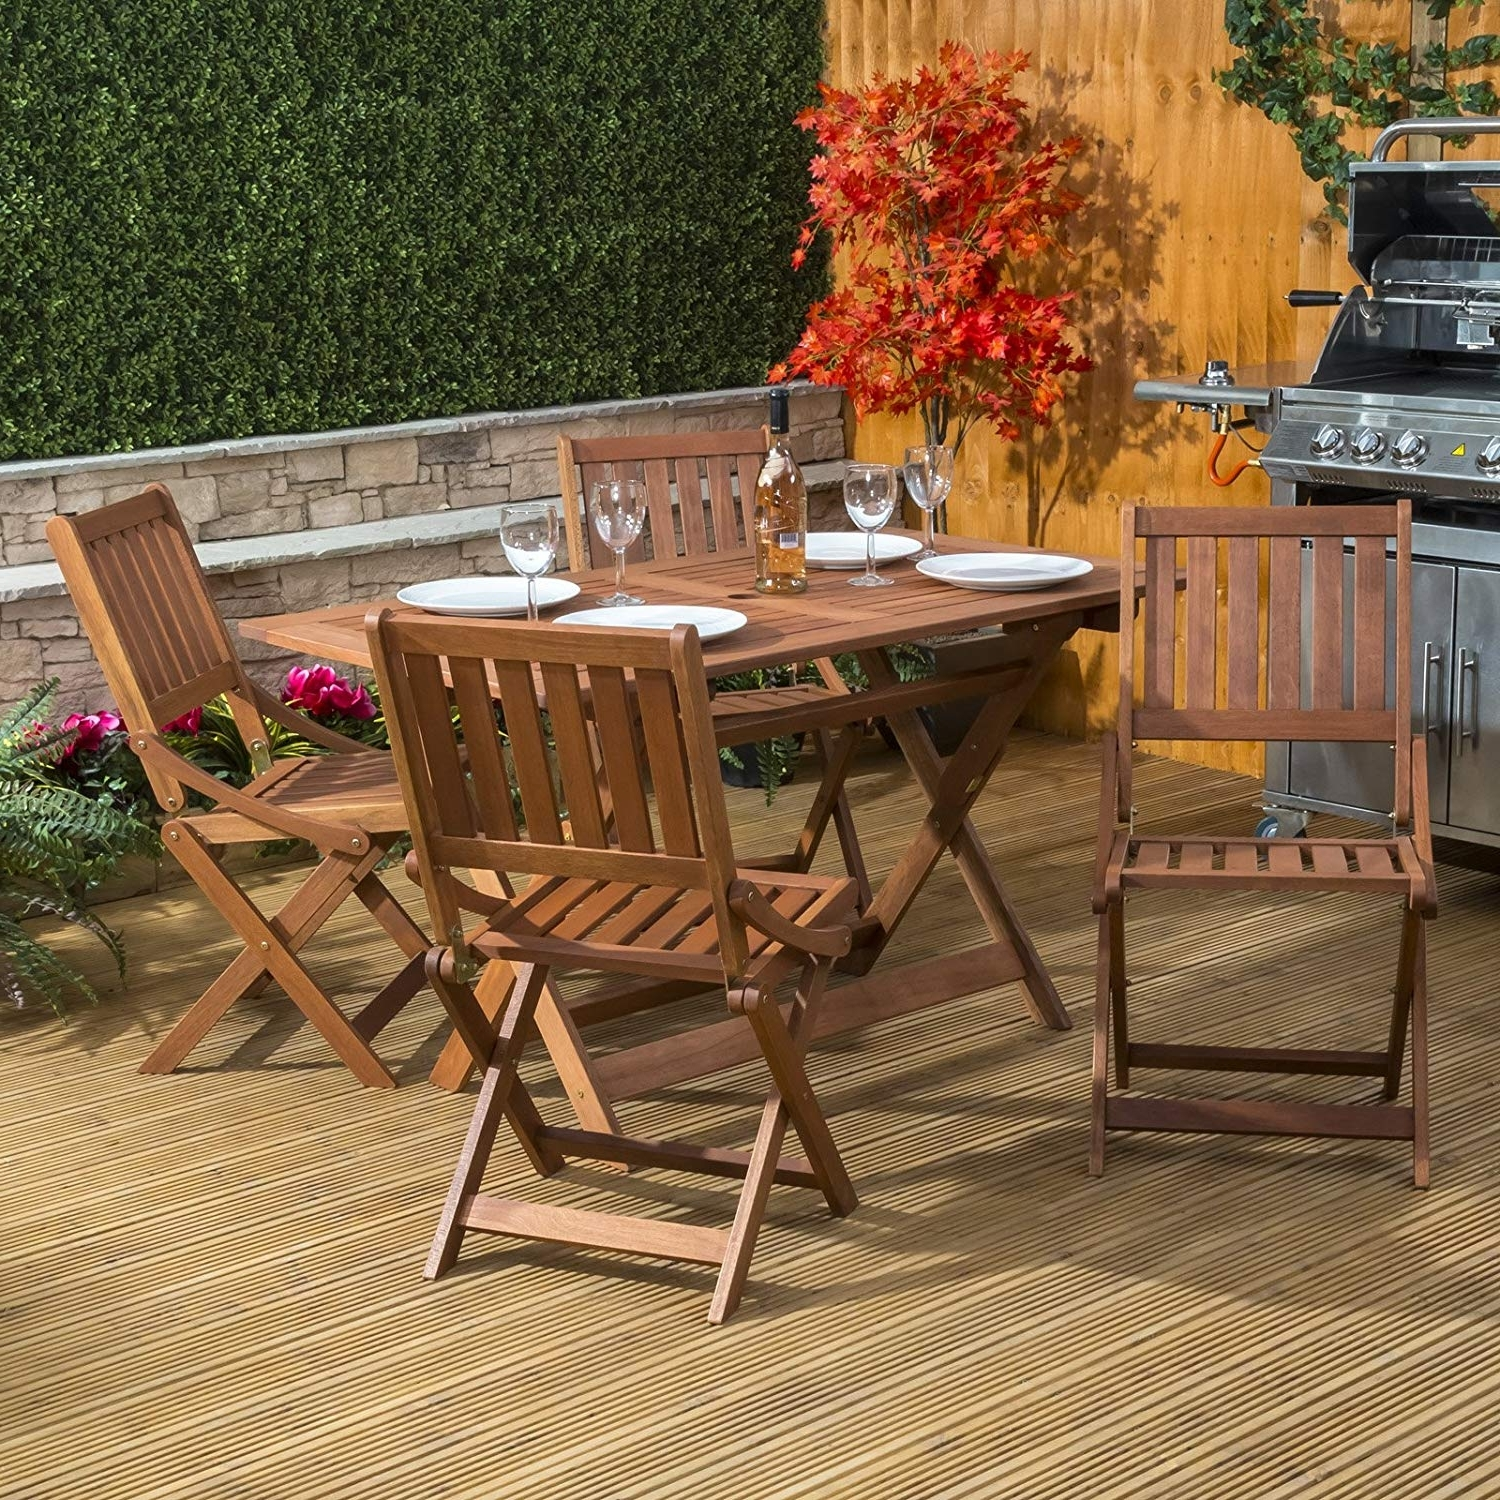 Outdoor Sienna Dining Tables Throughout Popular Alfresia Sienna Wooden Table And 4 Chair – Folding Garden & Patio (View 12 of 25)